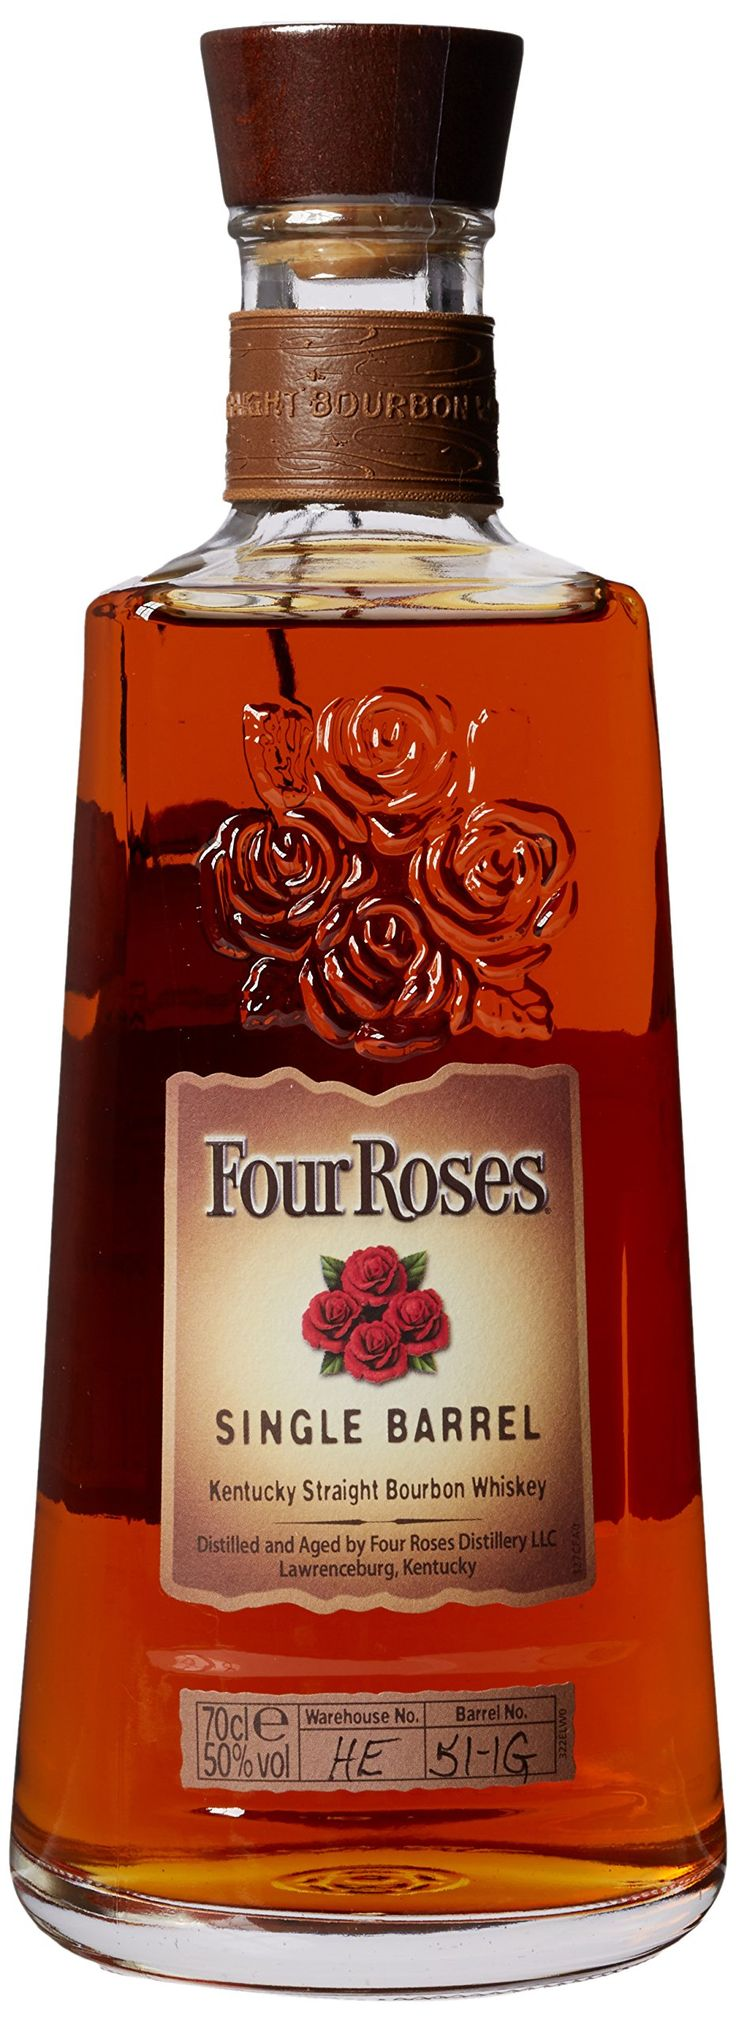 Mixed Drinks To Make With Four Roses Bourbon